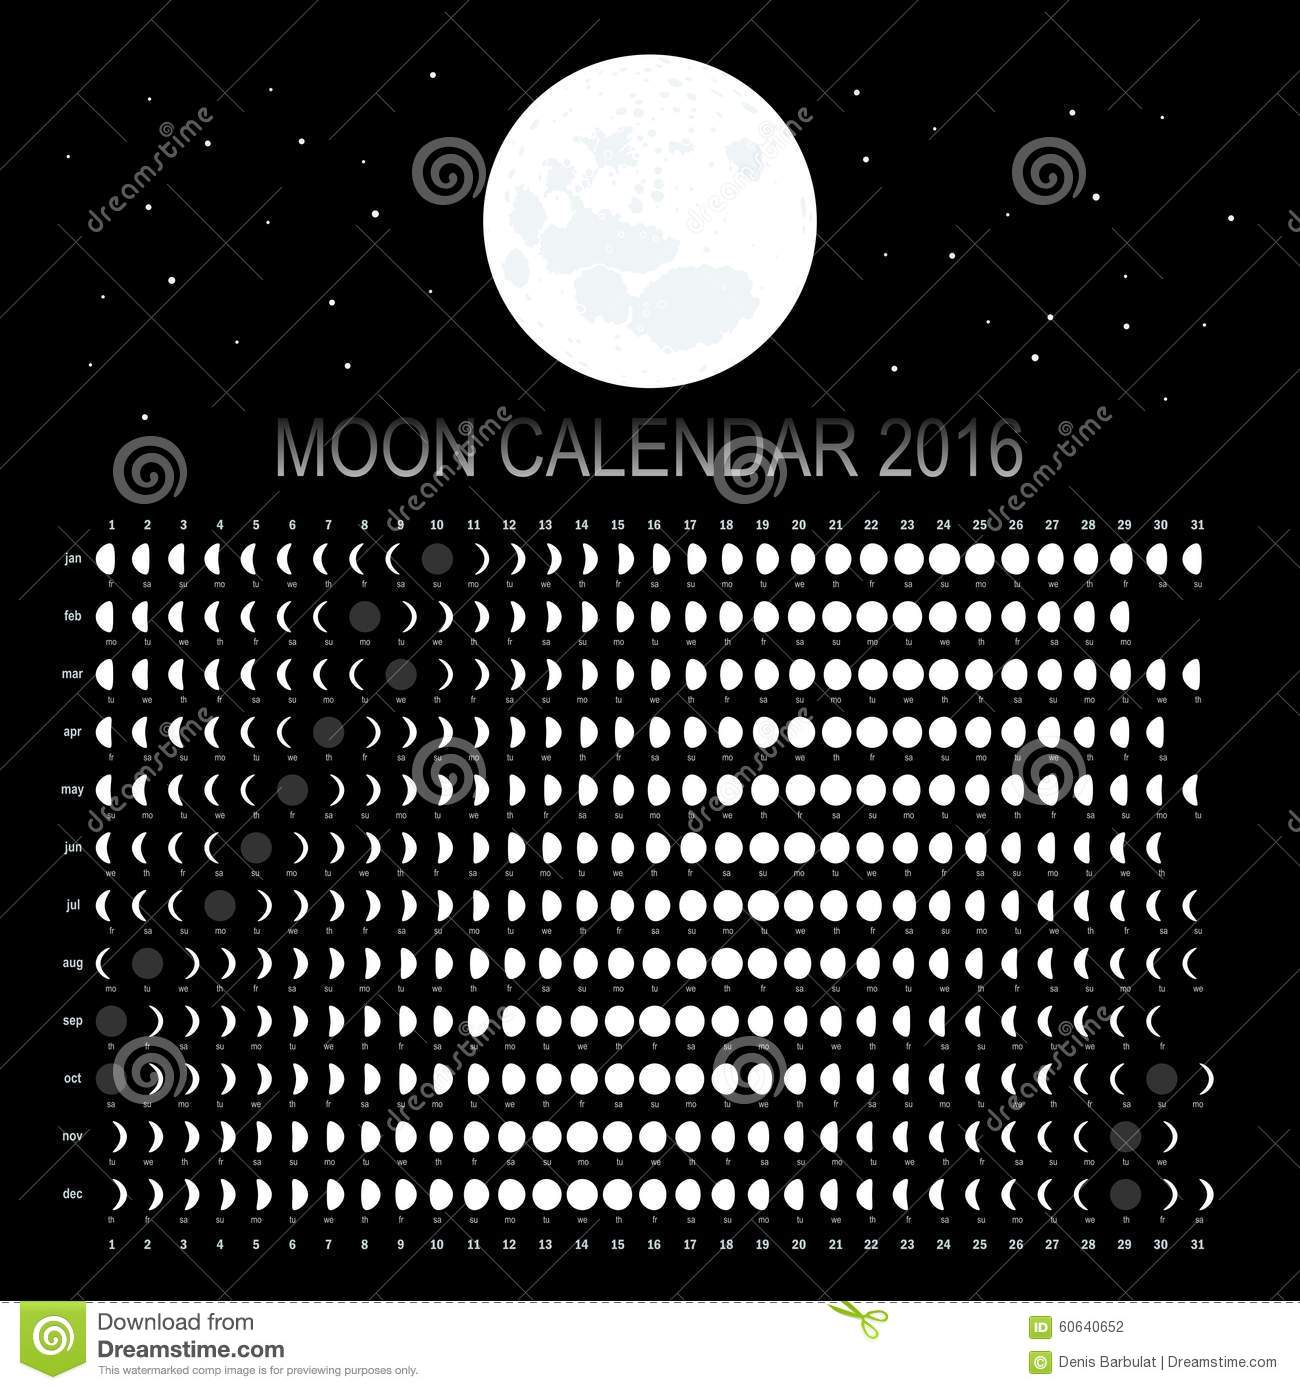 Lunar Calendar The Art Of Timing : Moon calendar stock vector image of phase design